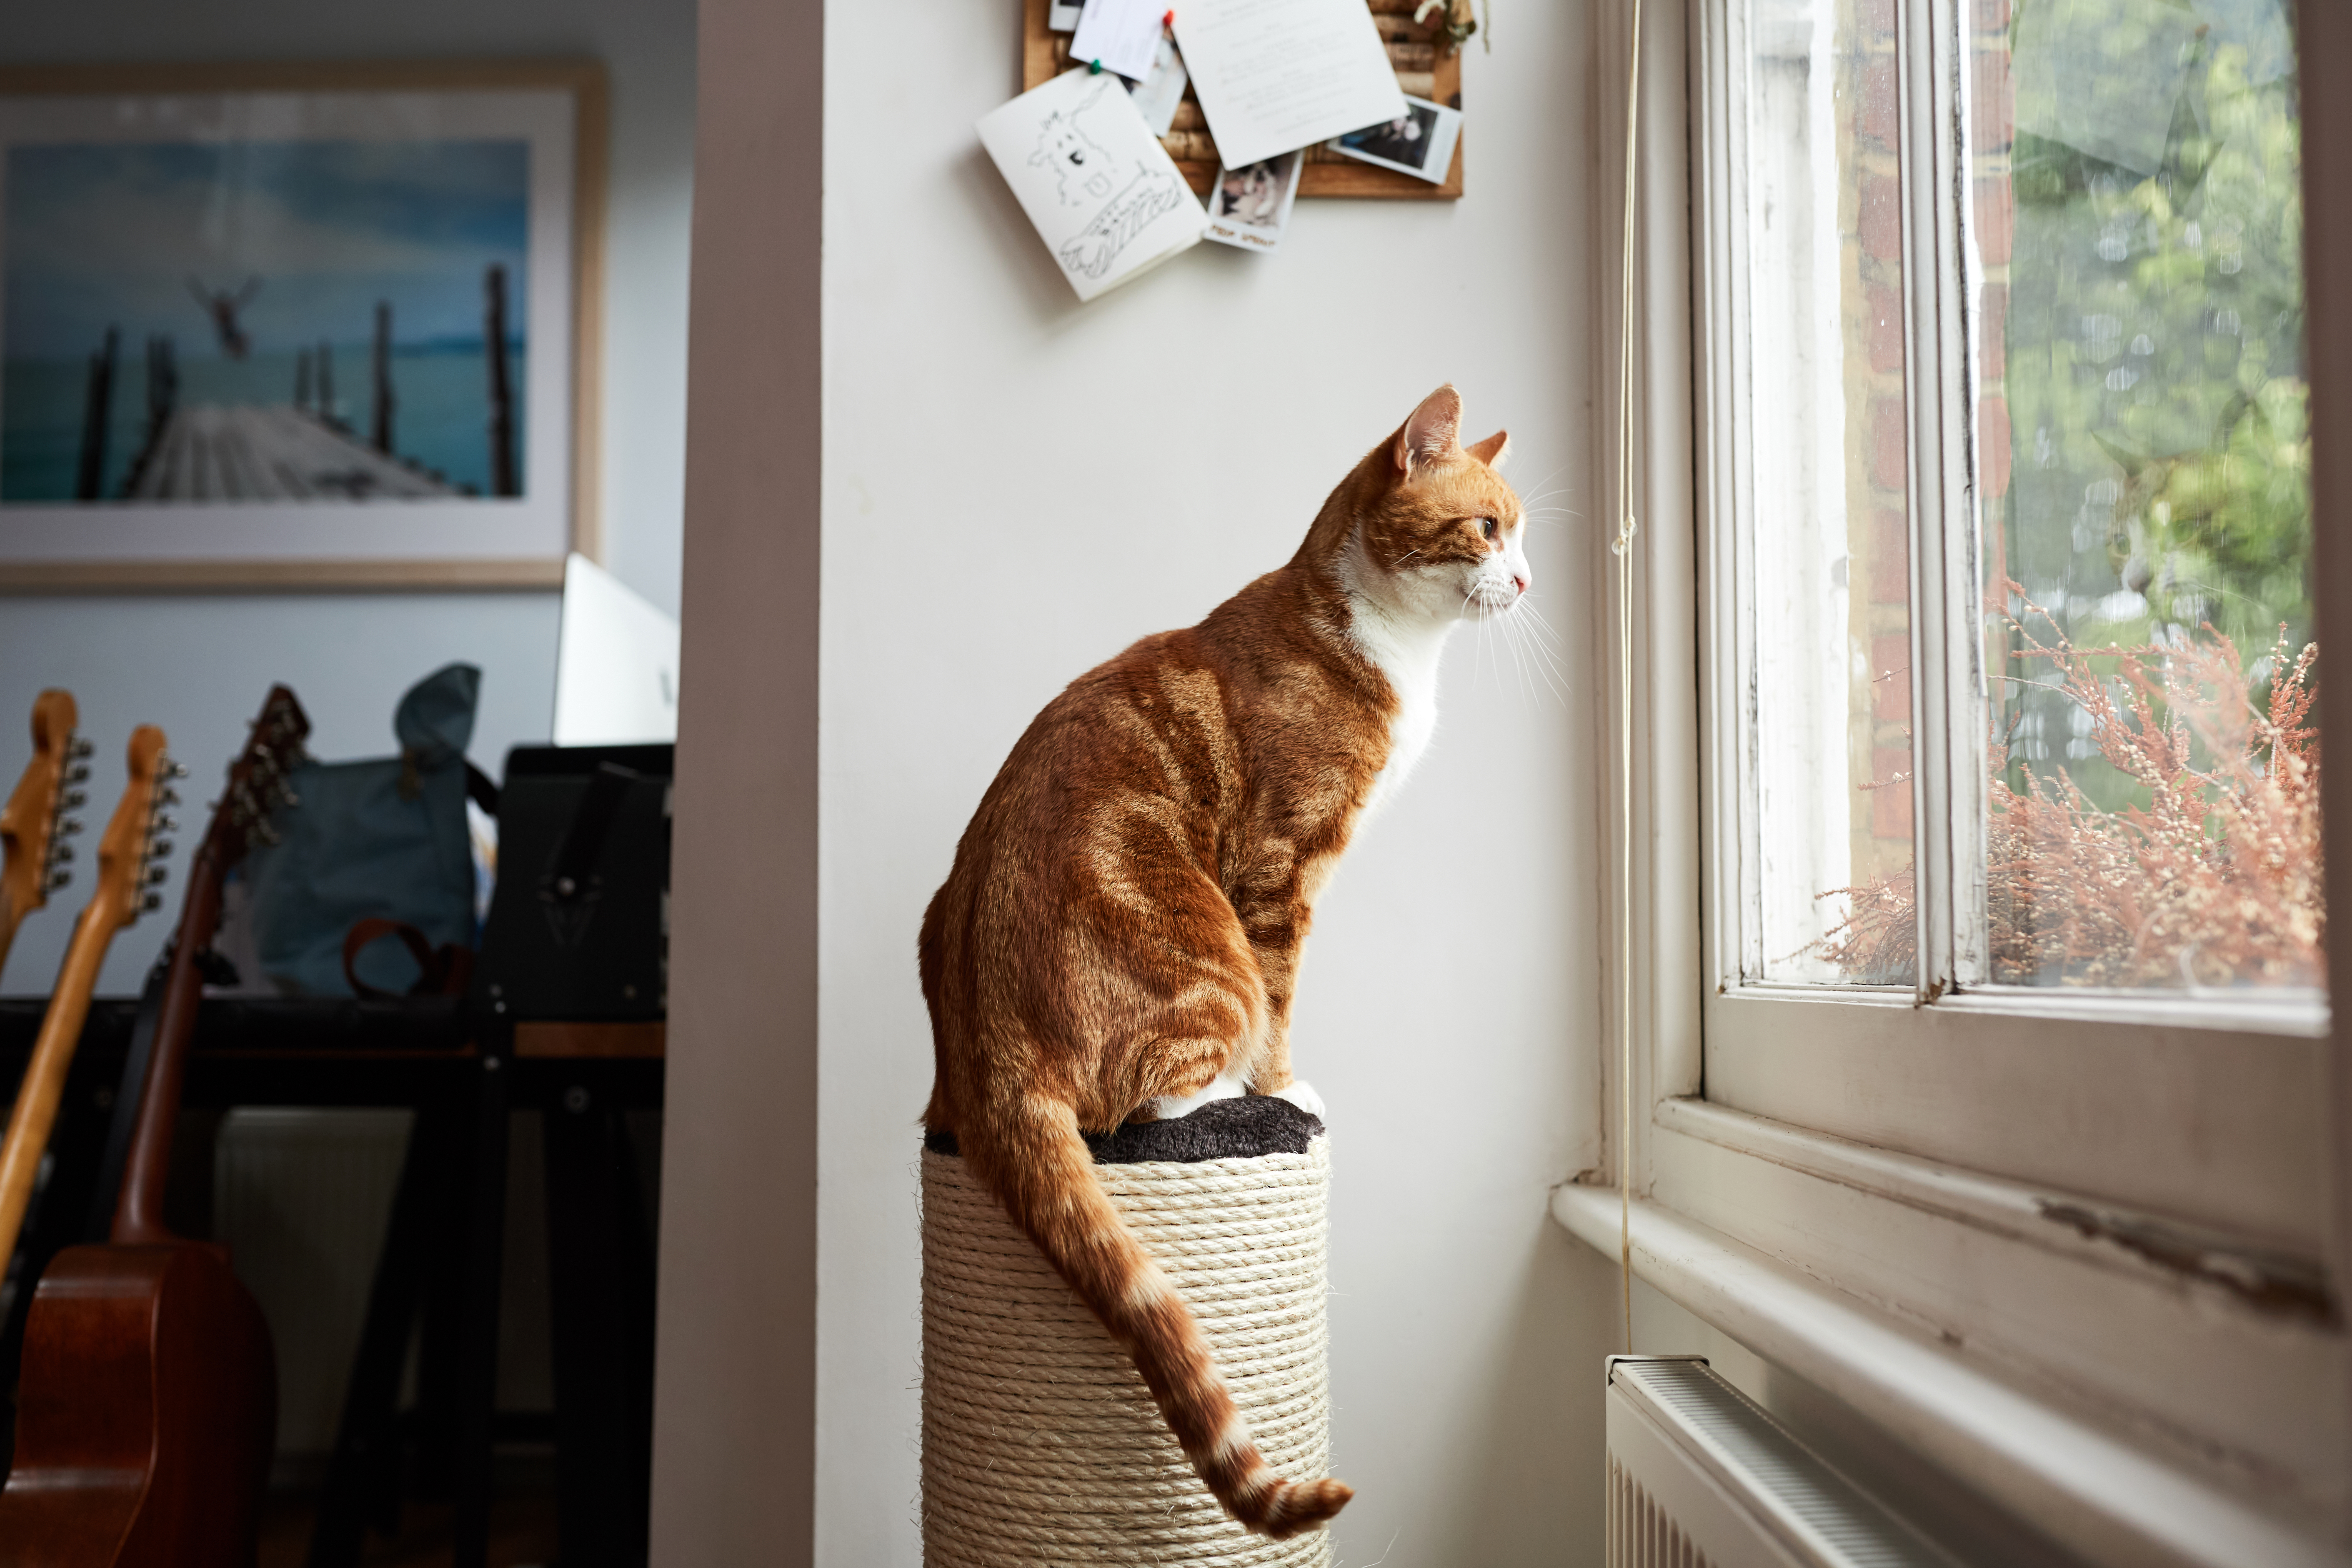 Your cat's aggression may have been triggered by them seeing strange cat through the window